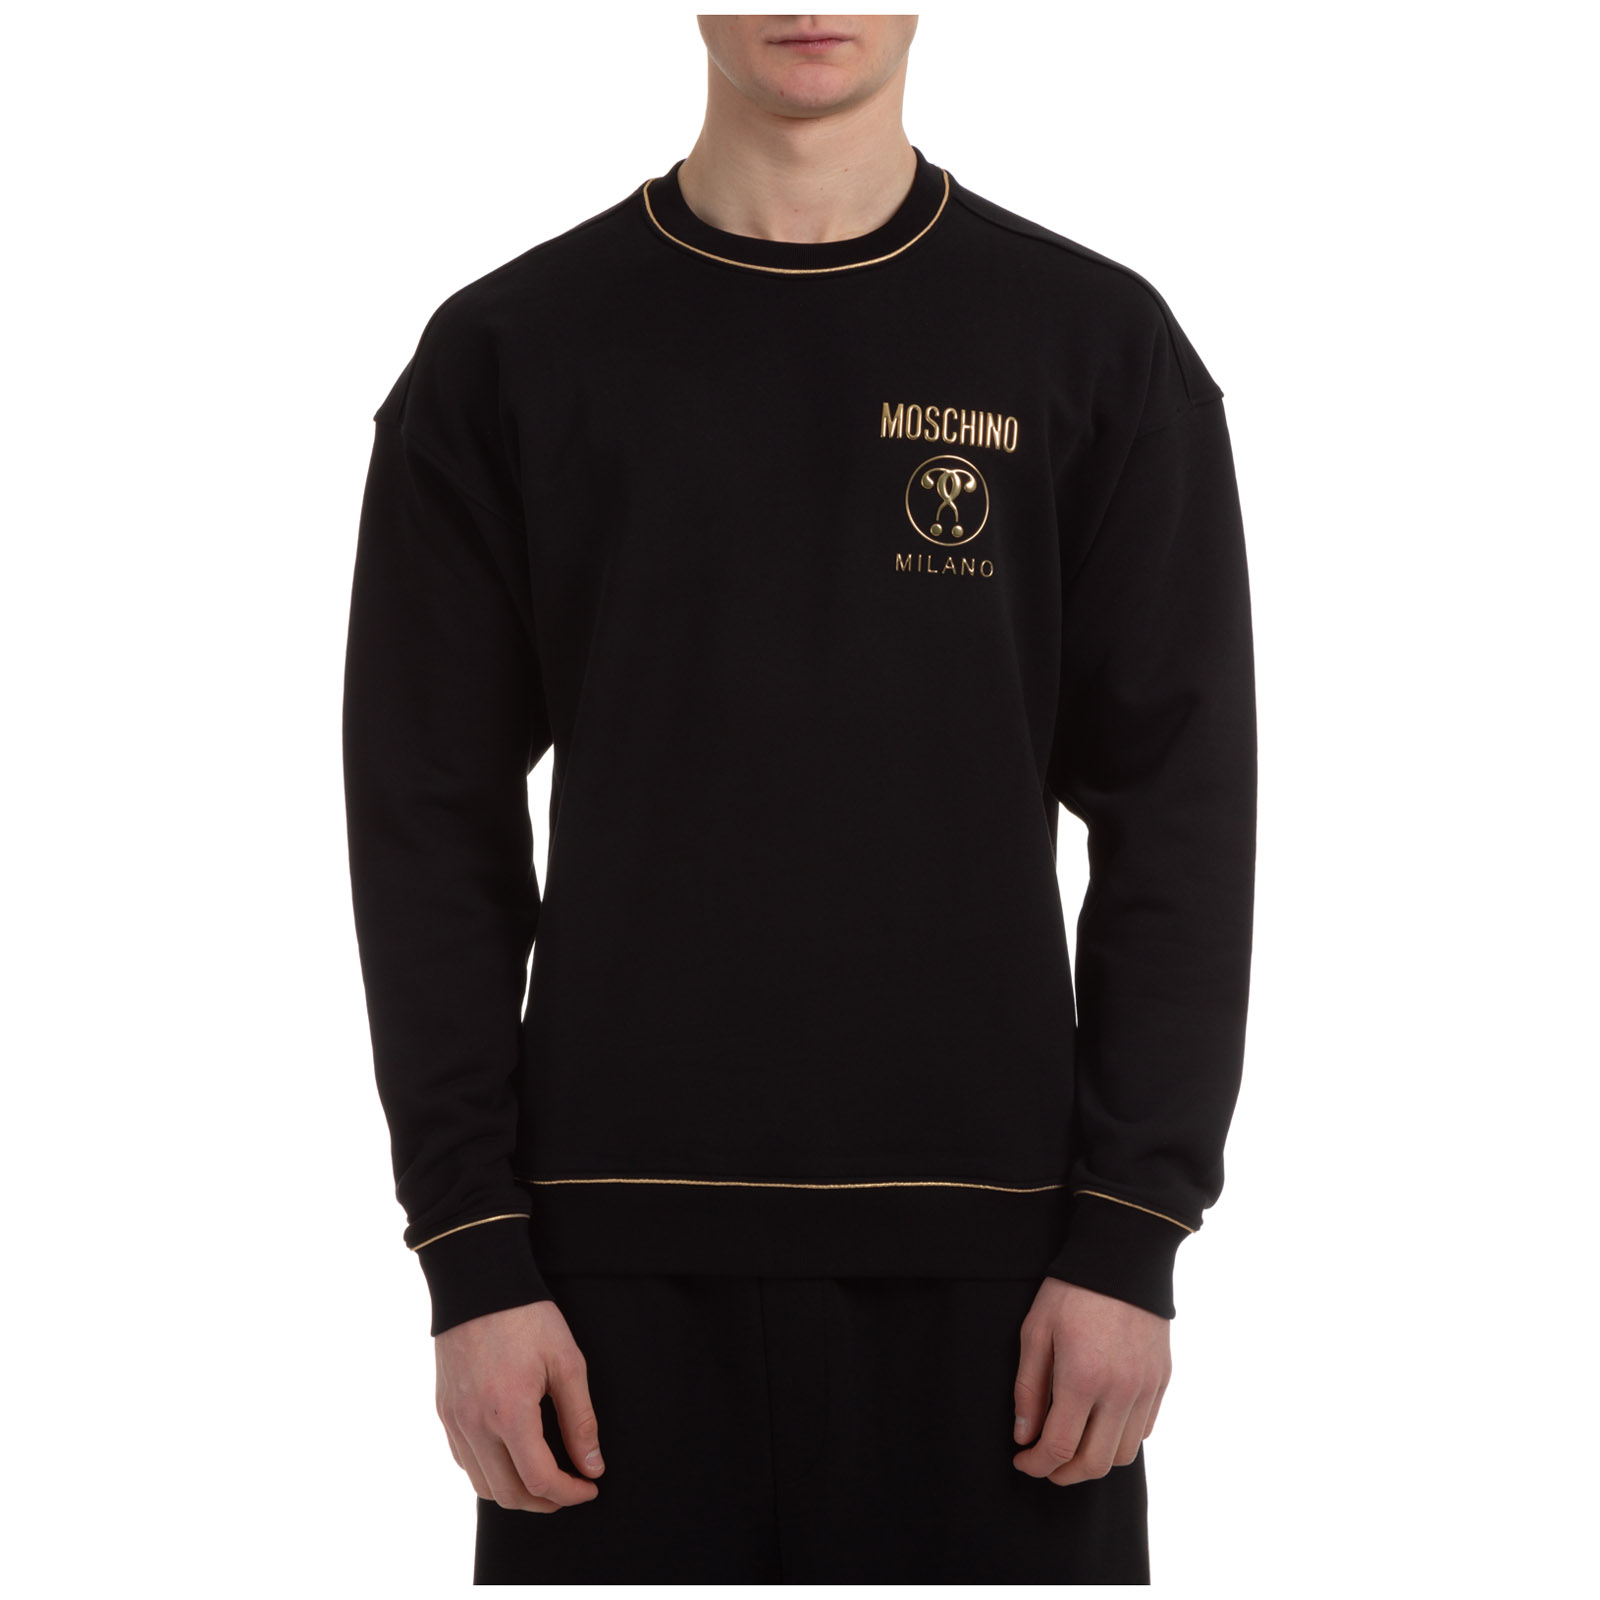 Moschino MEN'S SWEATSHIRT SWEAT  DOUBLE QUESTION MARK